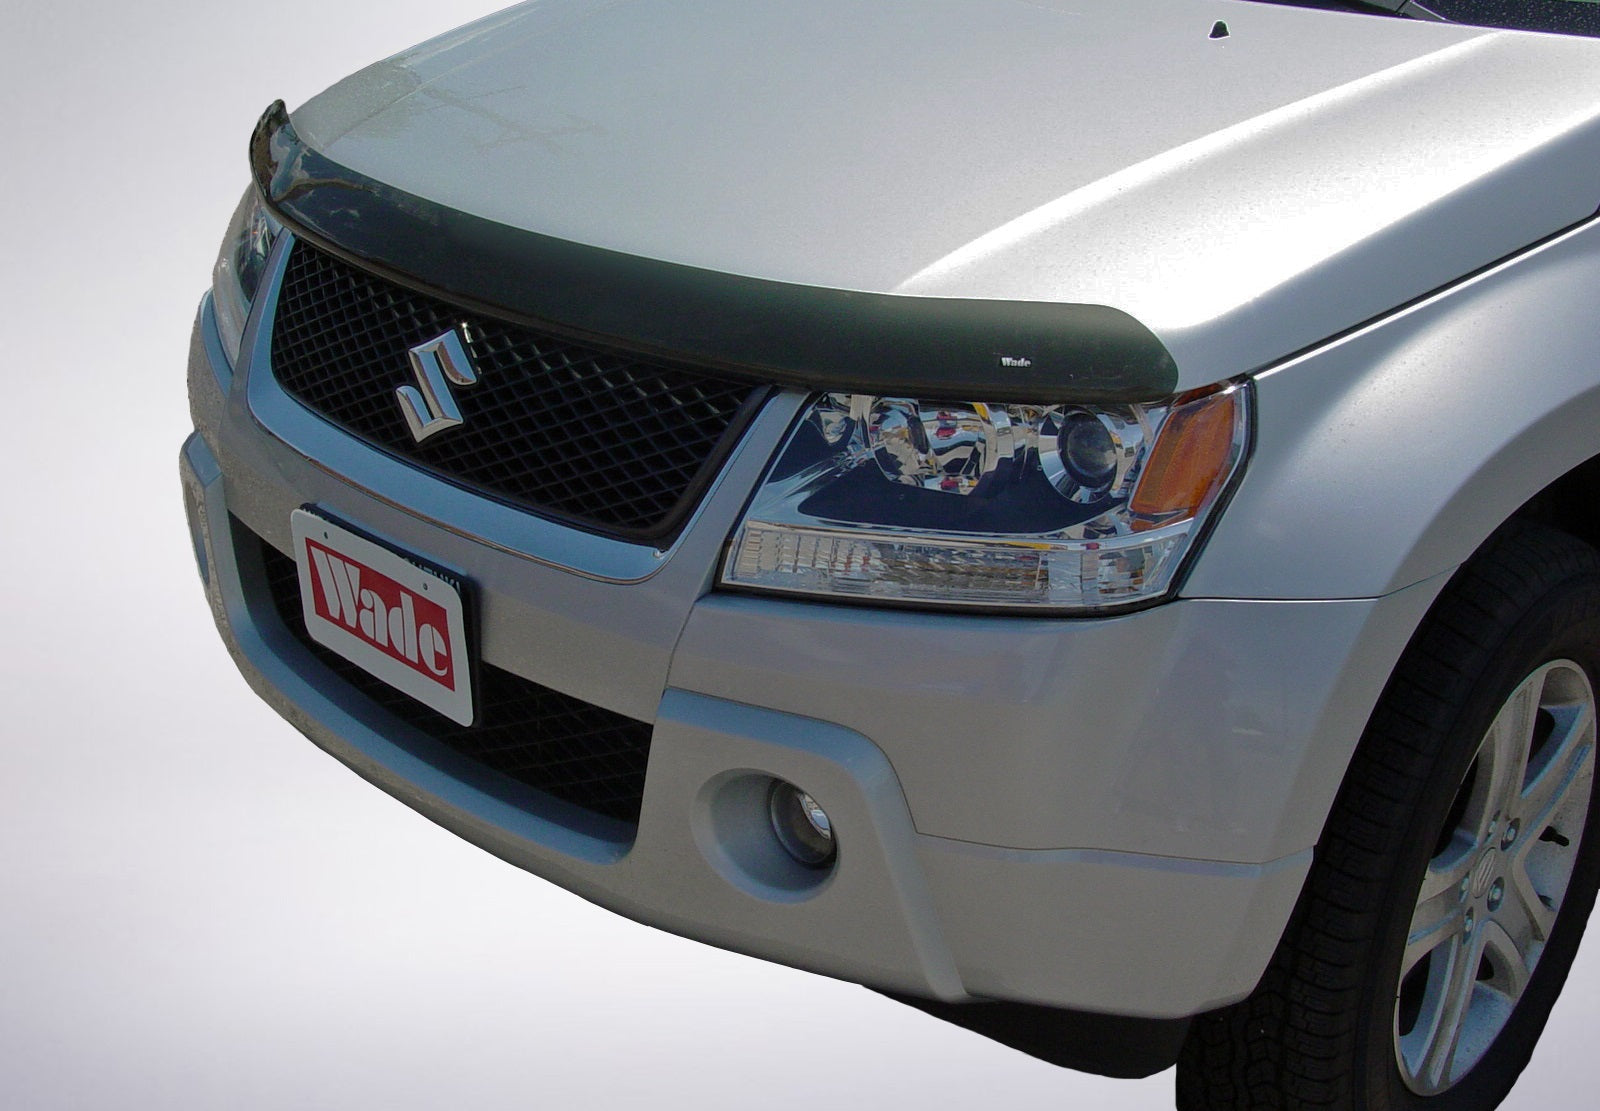 2006 Suzuki Grand Vitara Bug Shield